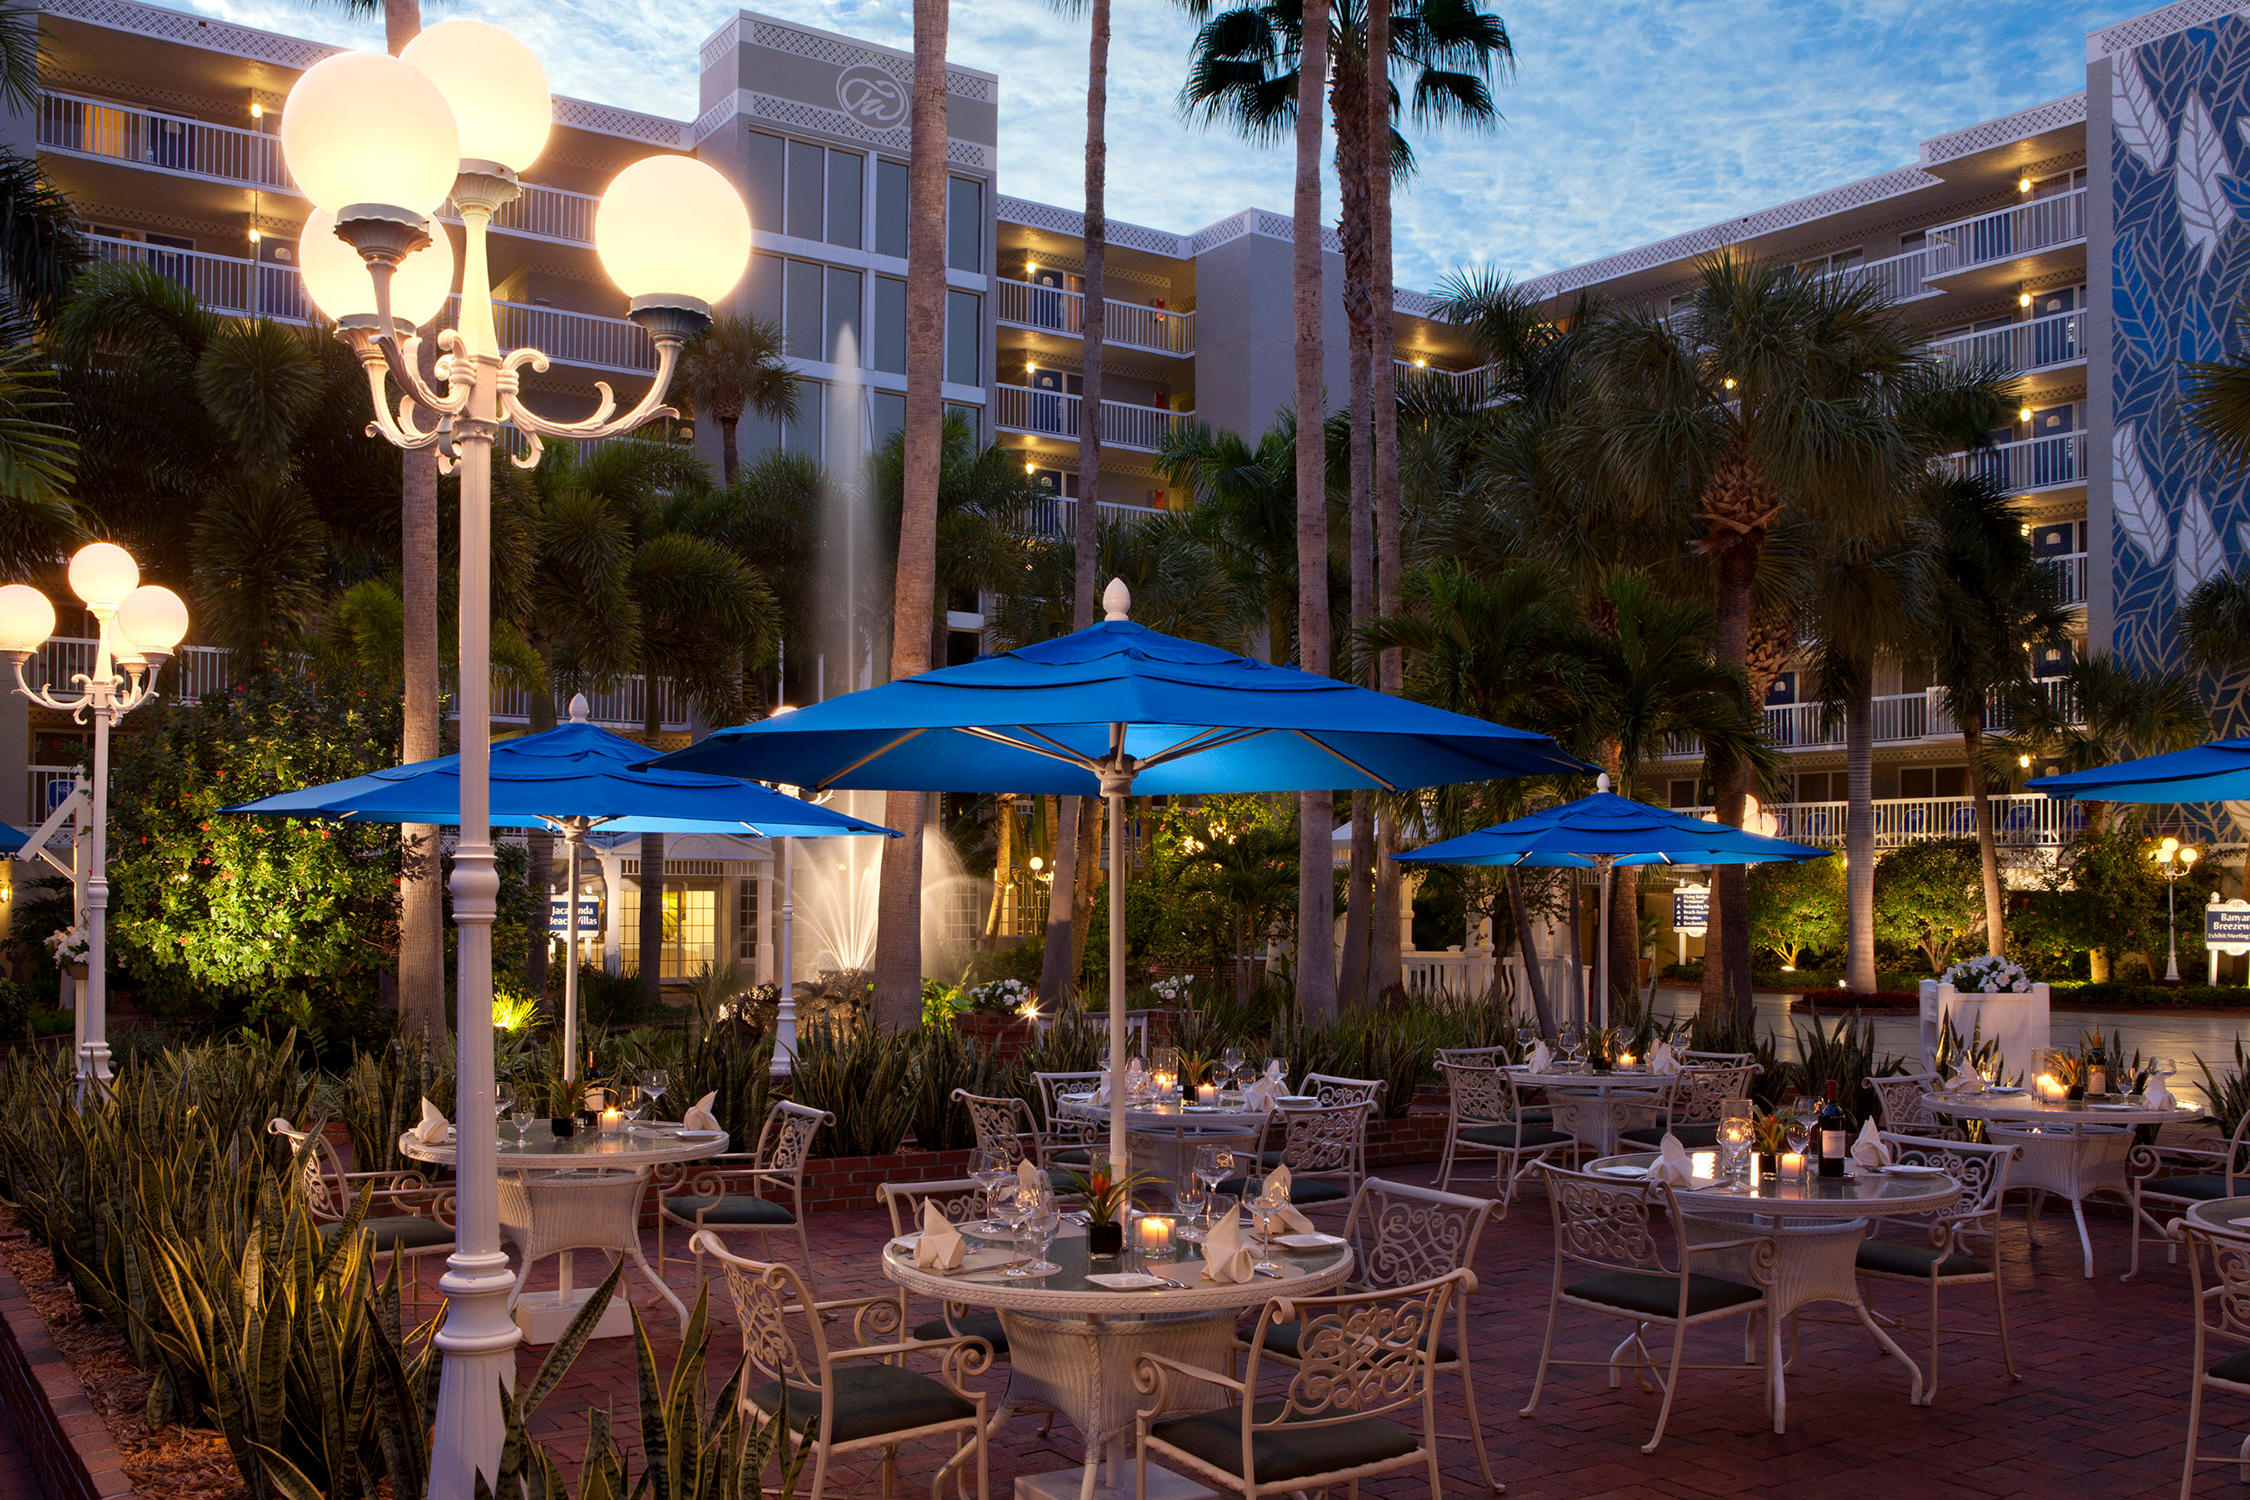 Enjoy terrace dining at Palm Court Italian Grill, rated the #1 restaurant on St. Pete Beach on TripAdvisor.